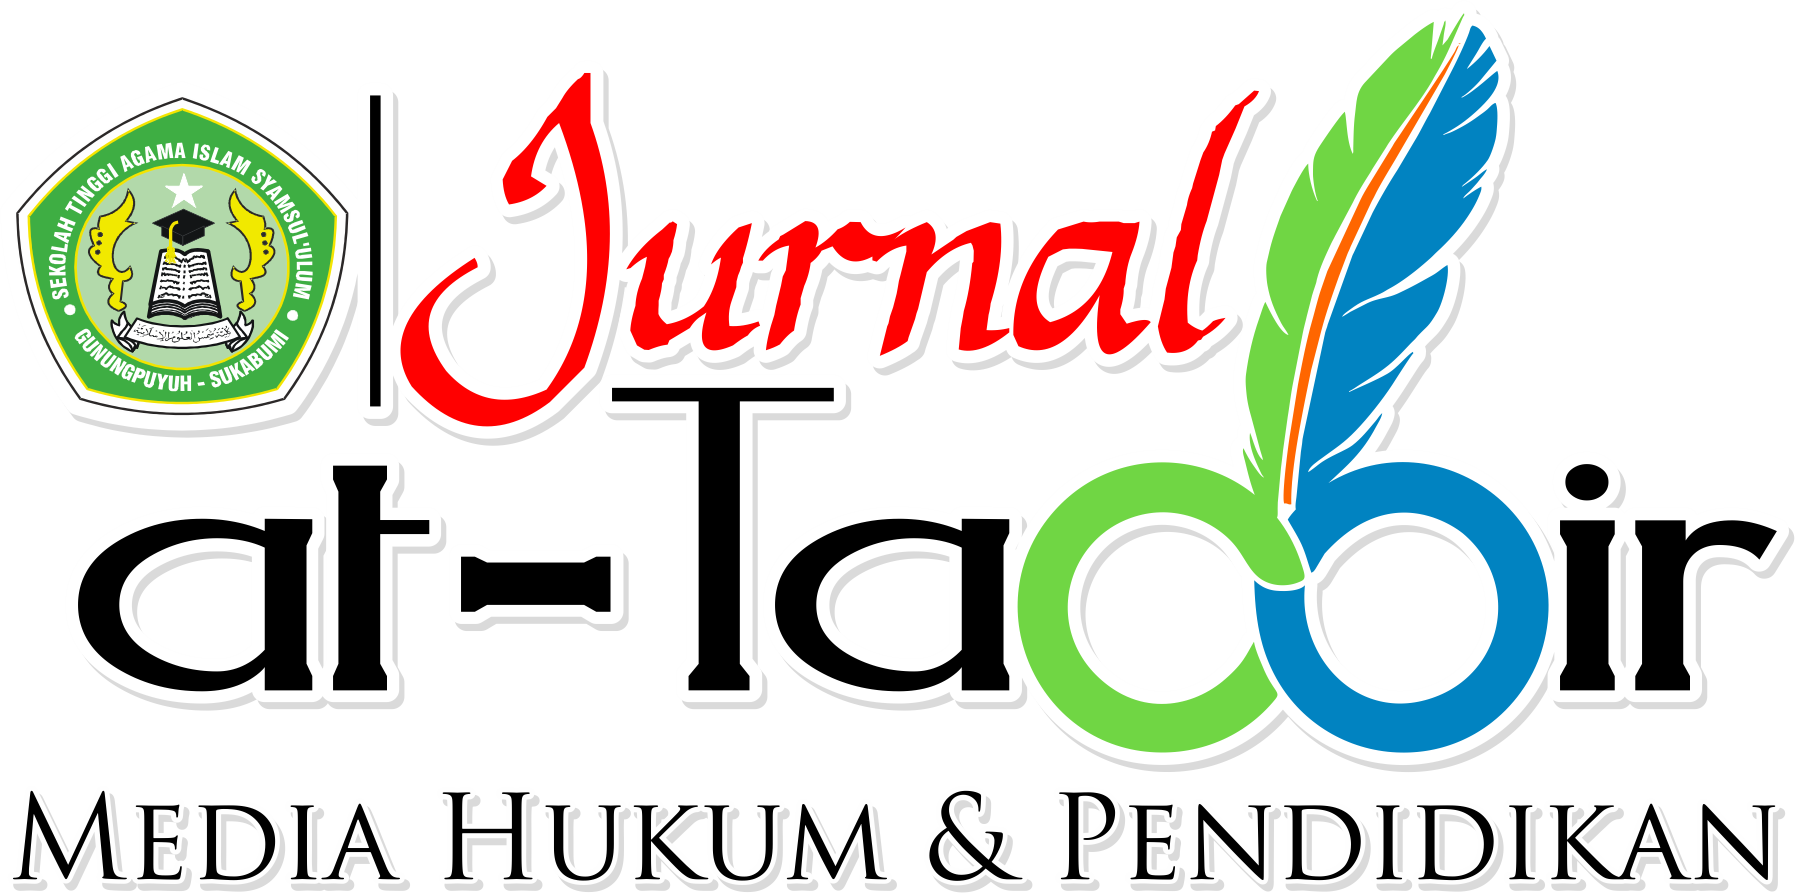 Jurnal At-Tadbir: Media Hukum & Pendidikan